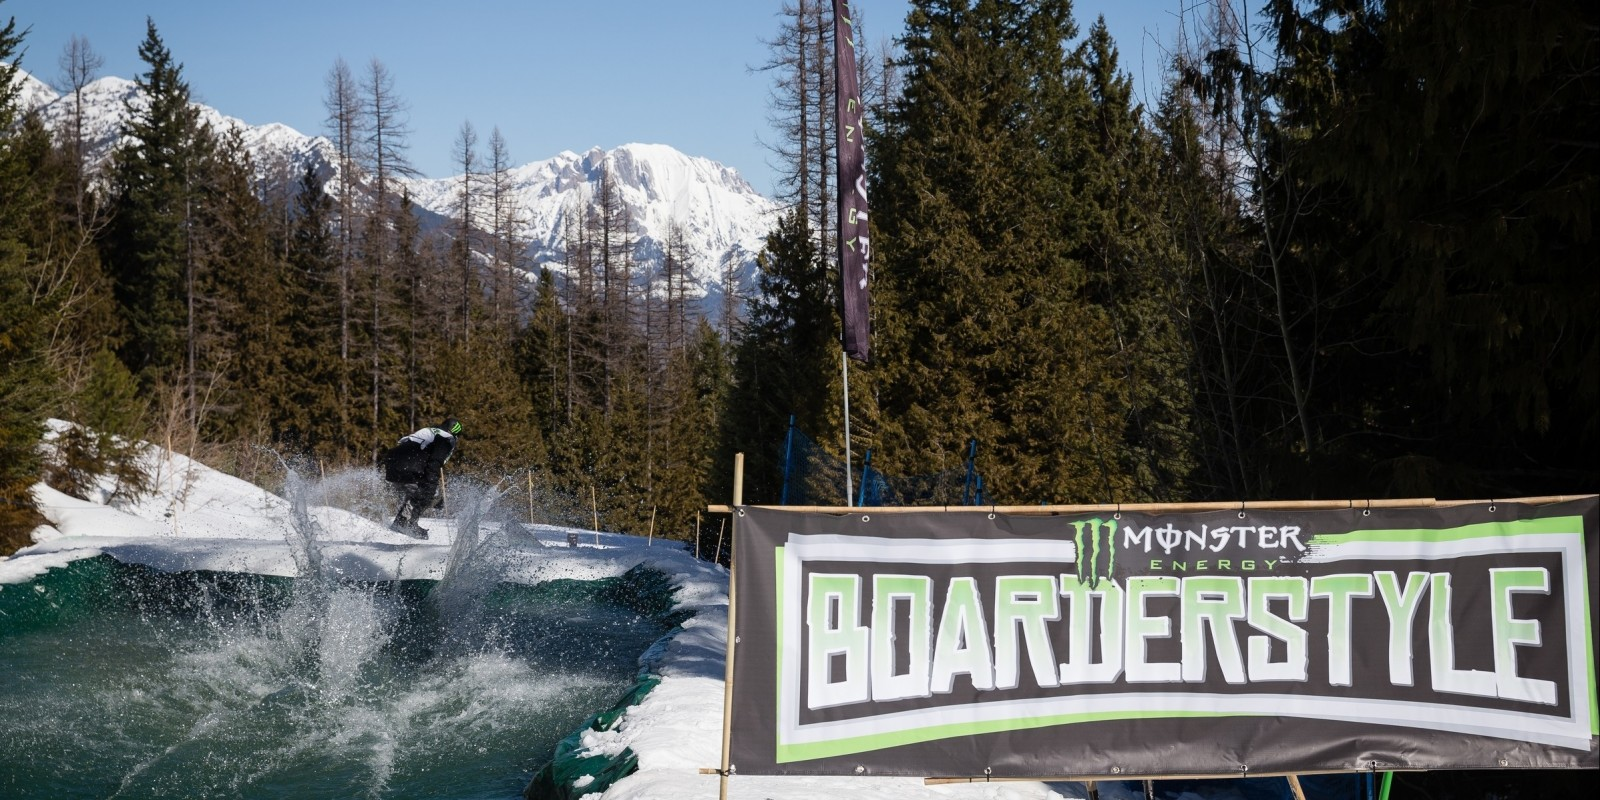 Mark Sollors at the 2016 Boarderstyle Nationals in Fernie, BC